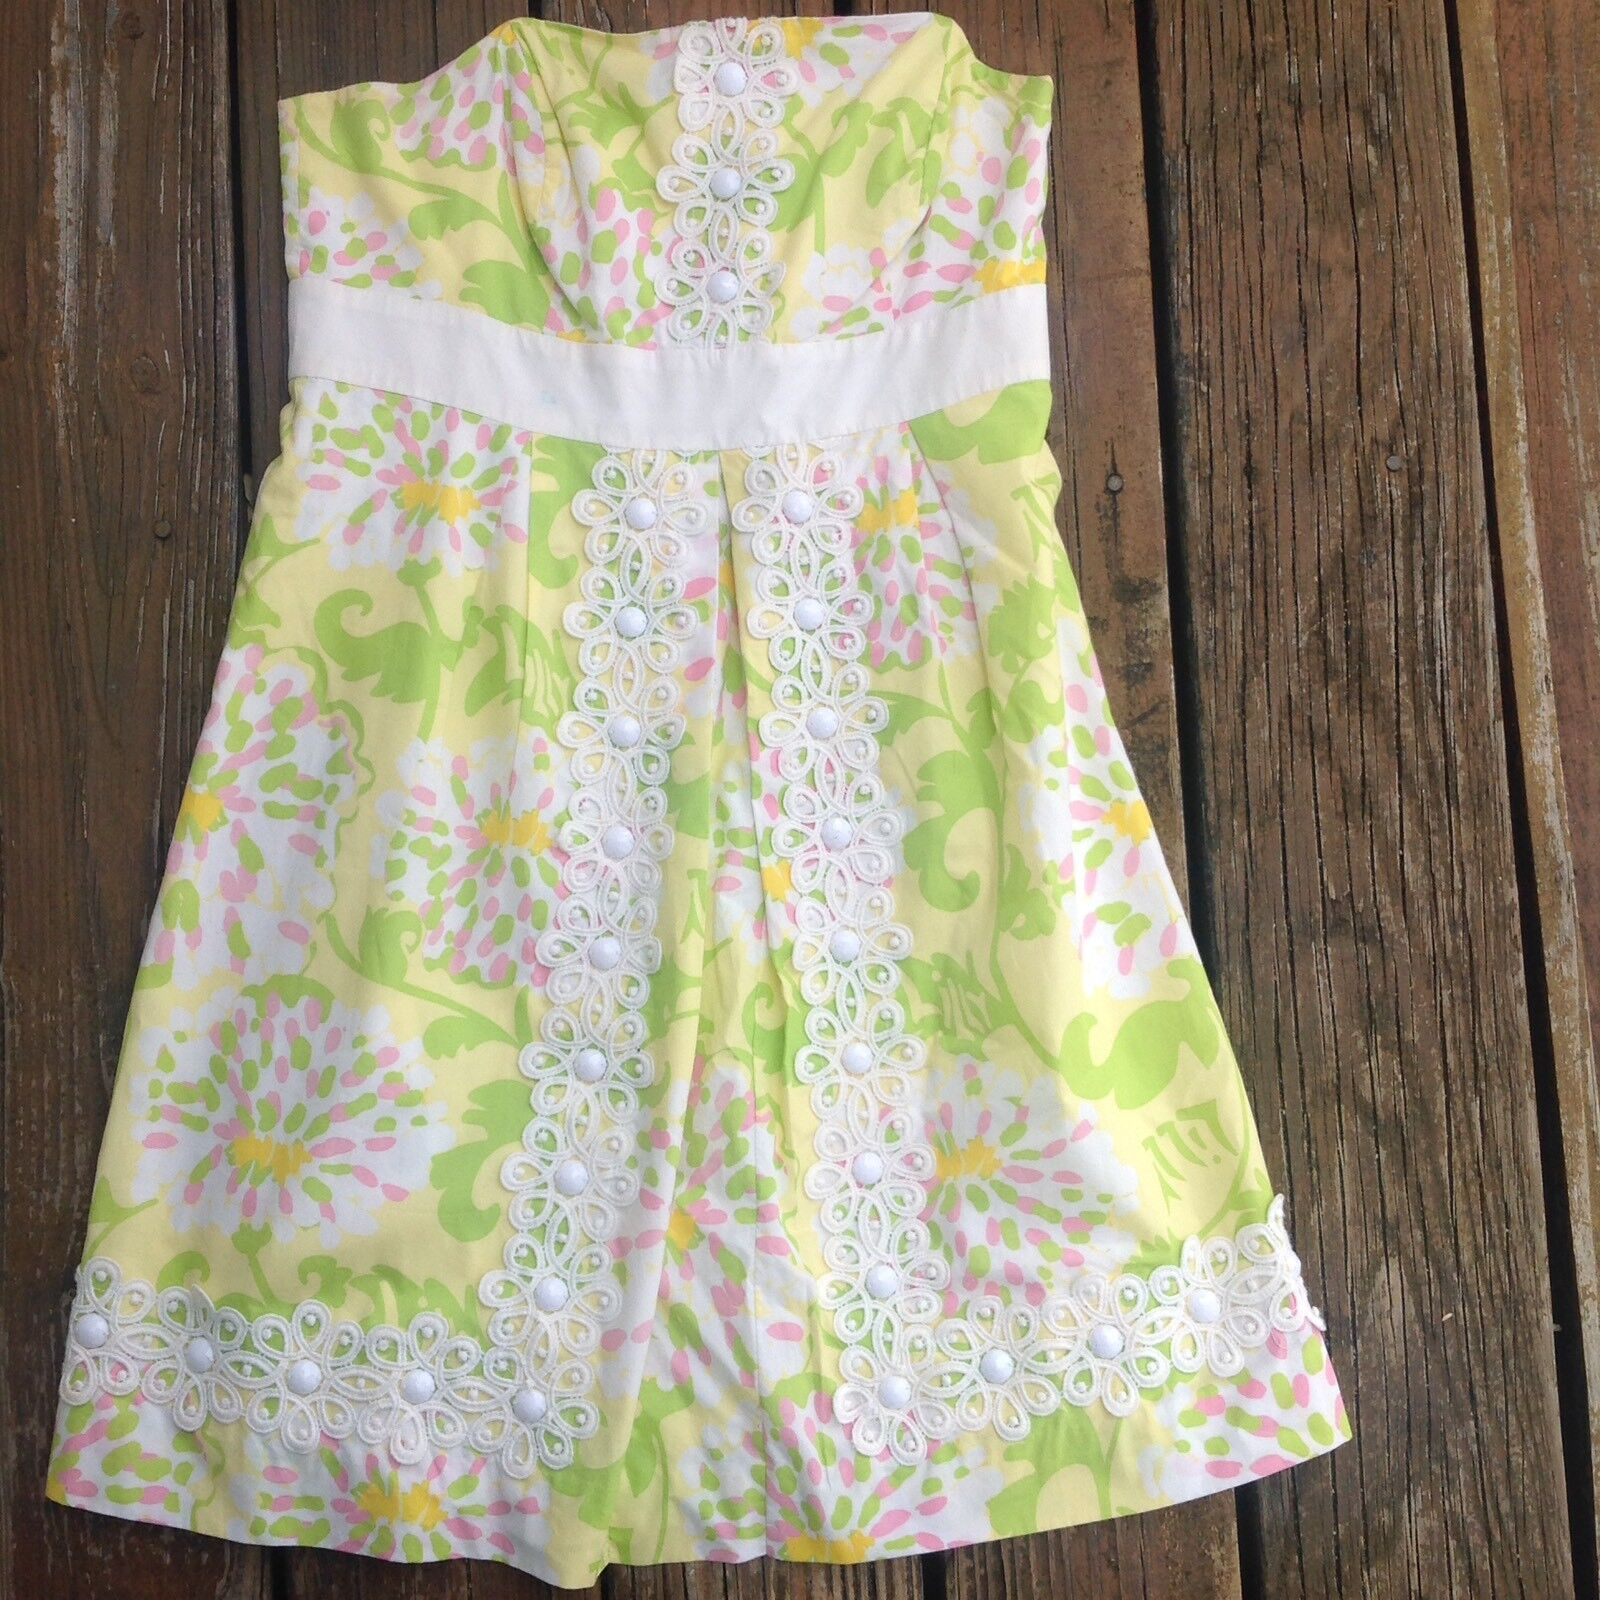 Lilly Pulitzer Jubilee Grün Gelb floral dans les feuilles bustier robe 2 bead